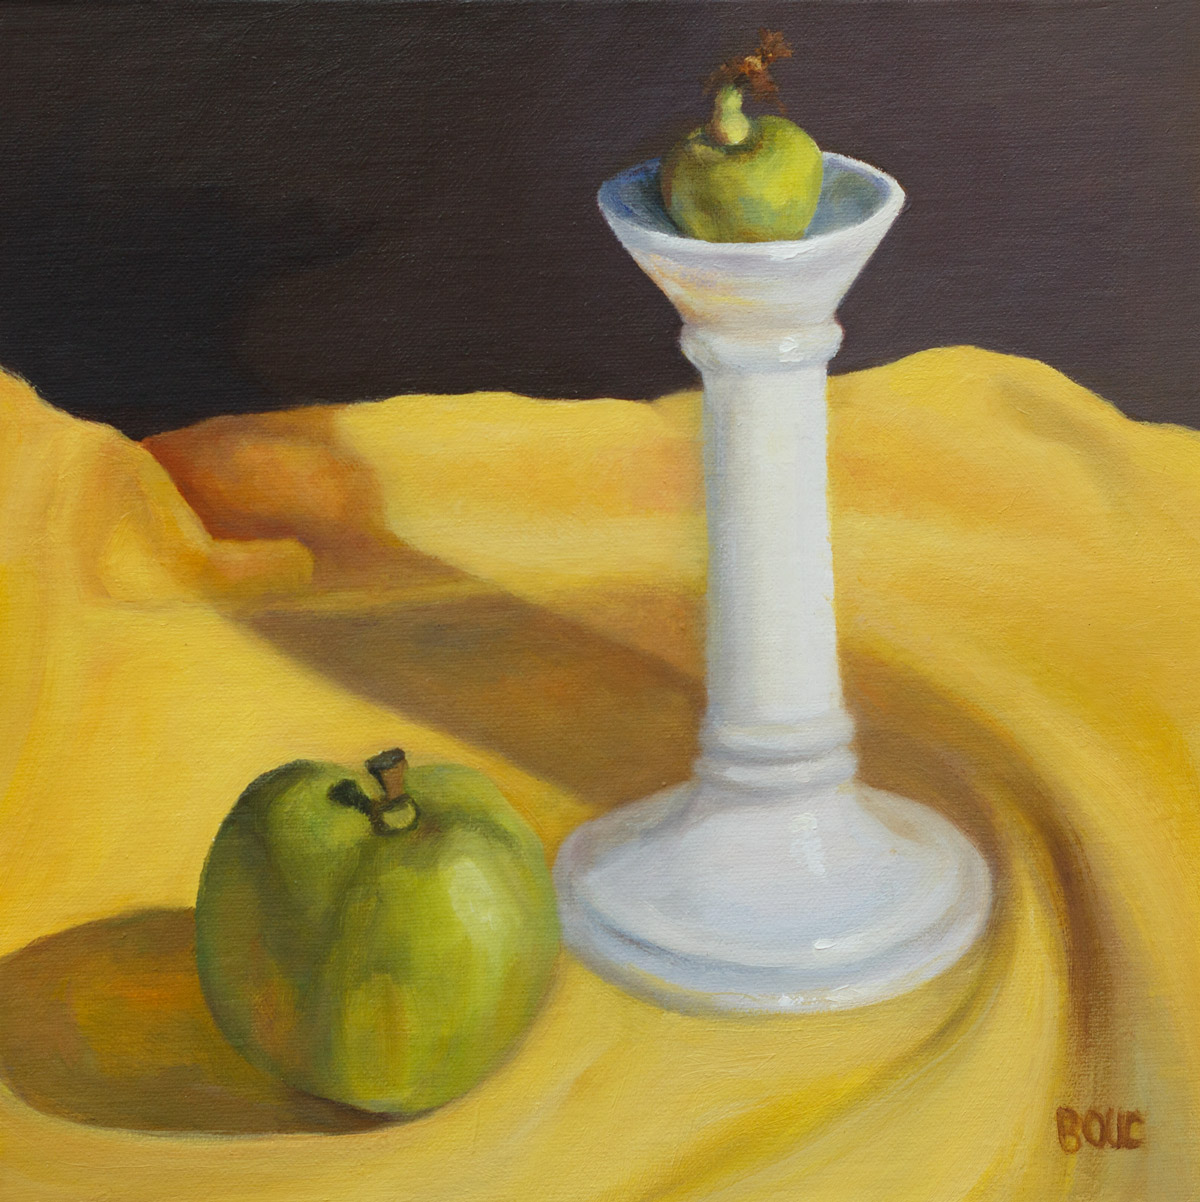 """Found on the Street #1, Candlestick and Apples, oil painting on panel, 8x8"""" ($110 at my DPW Gallery: click here) (Click image to enlarge)"""